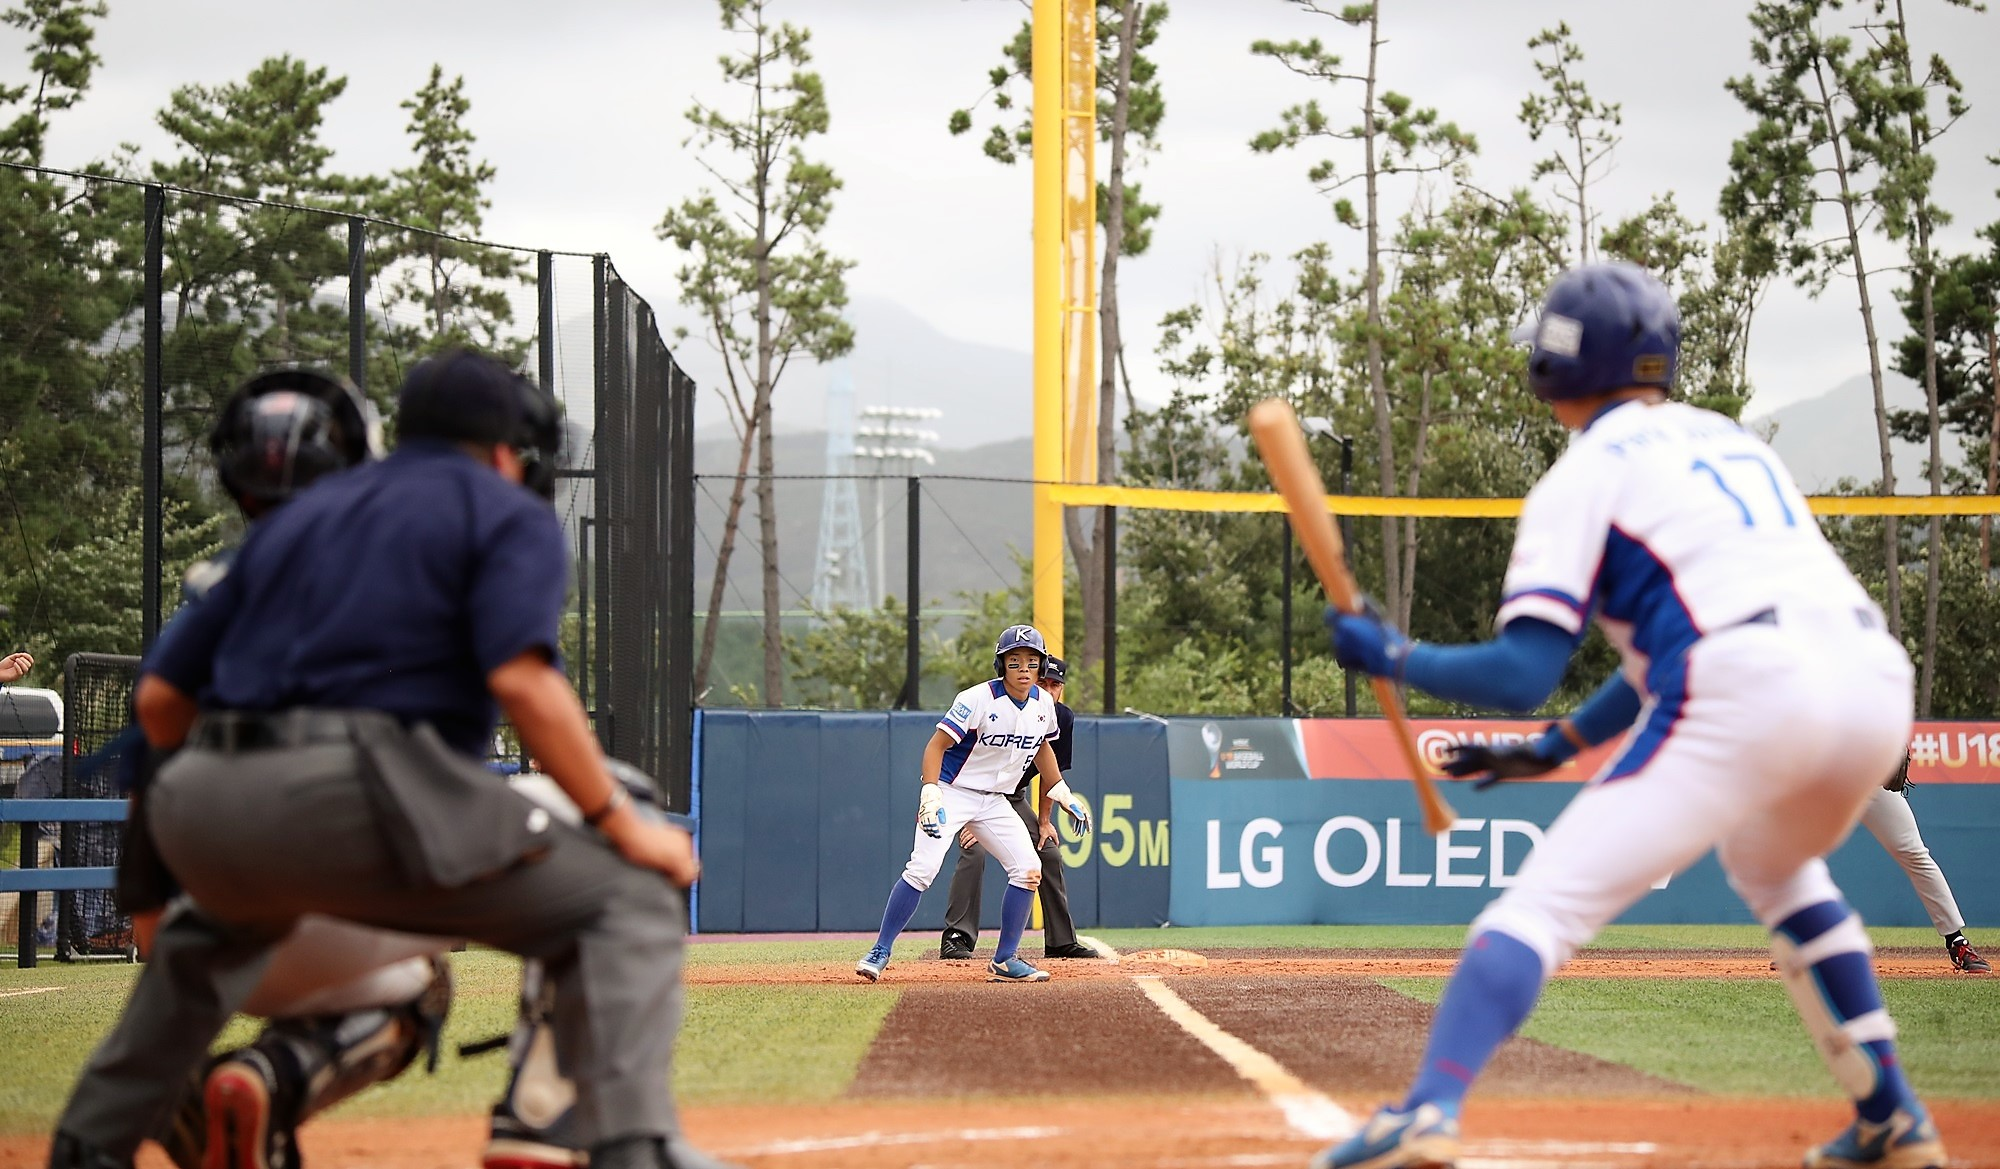 Korea wasted no time to score. Here yu see Parkjuhong at  bat with a runner in scoring position